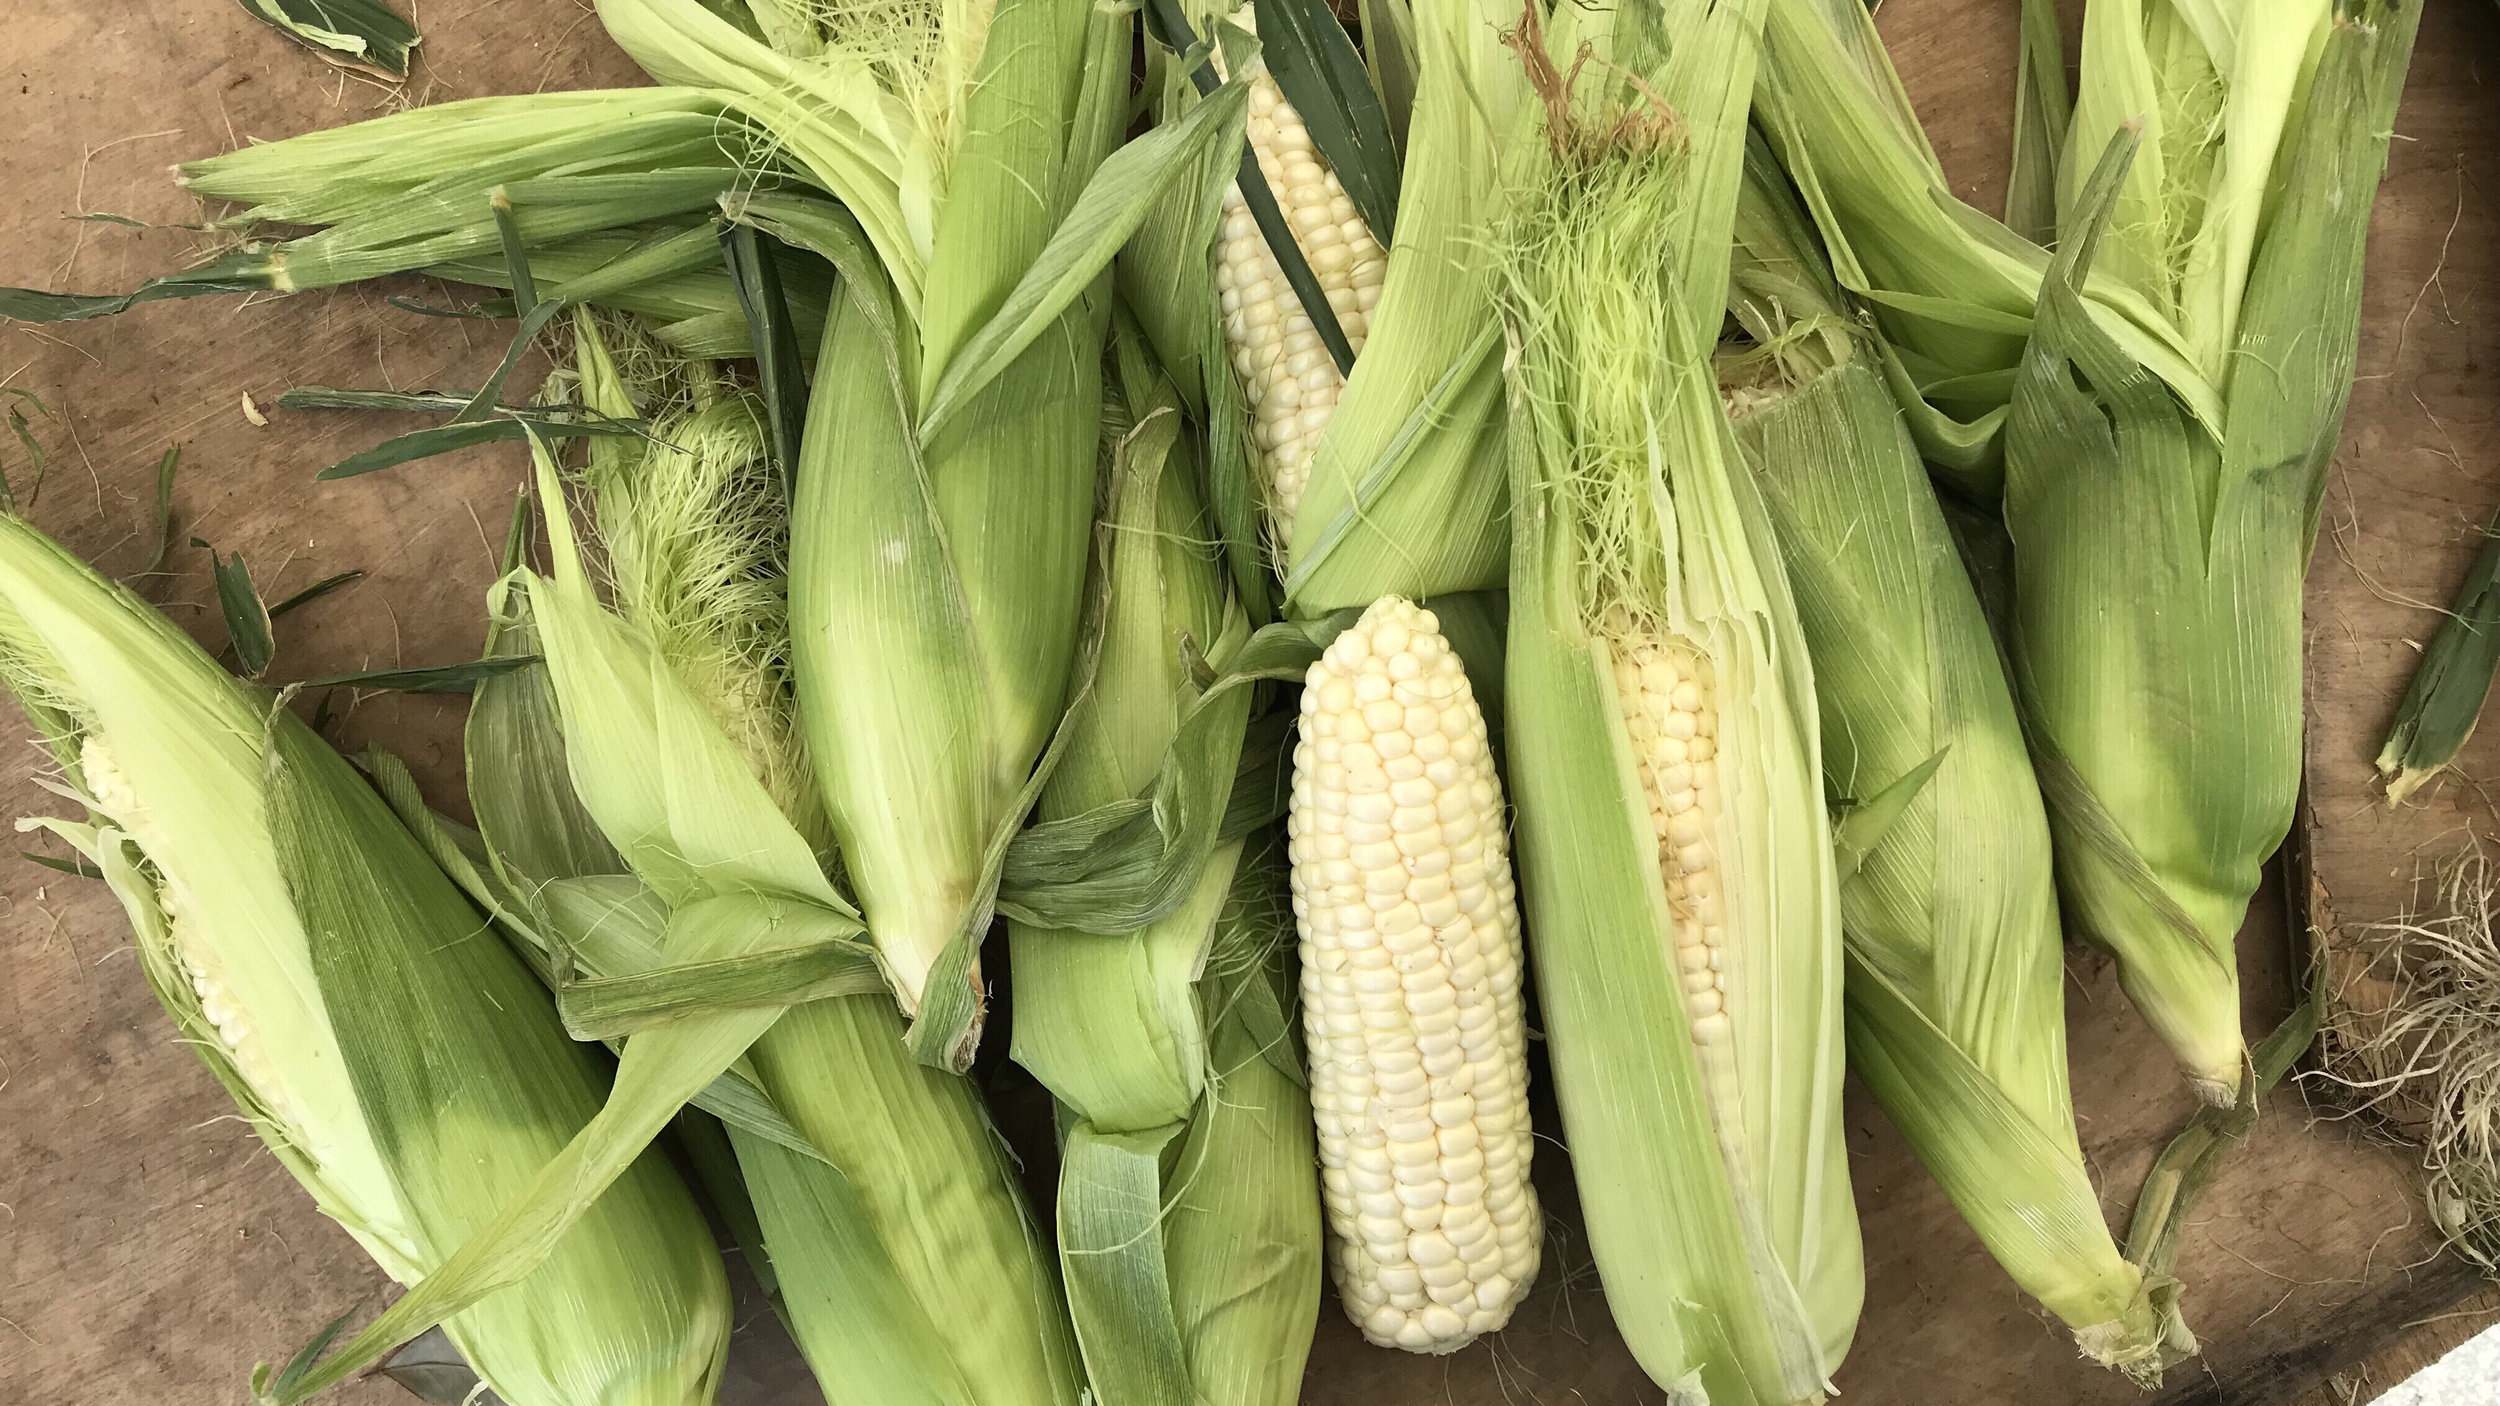 June Sweet Corn